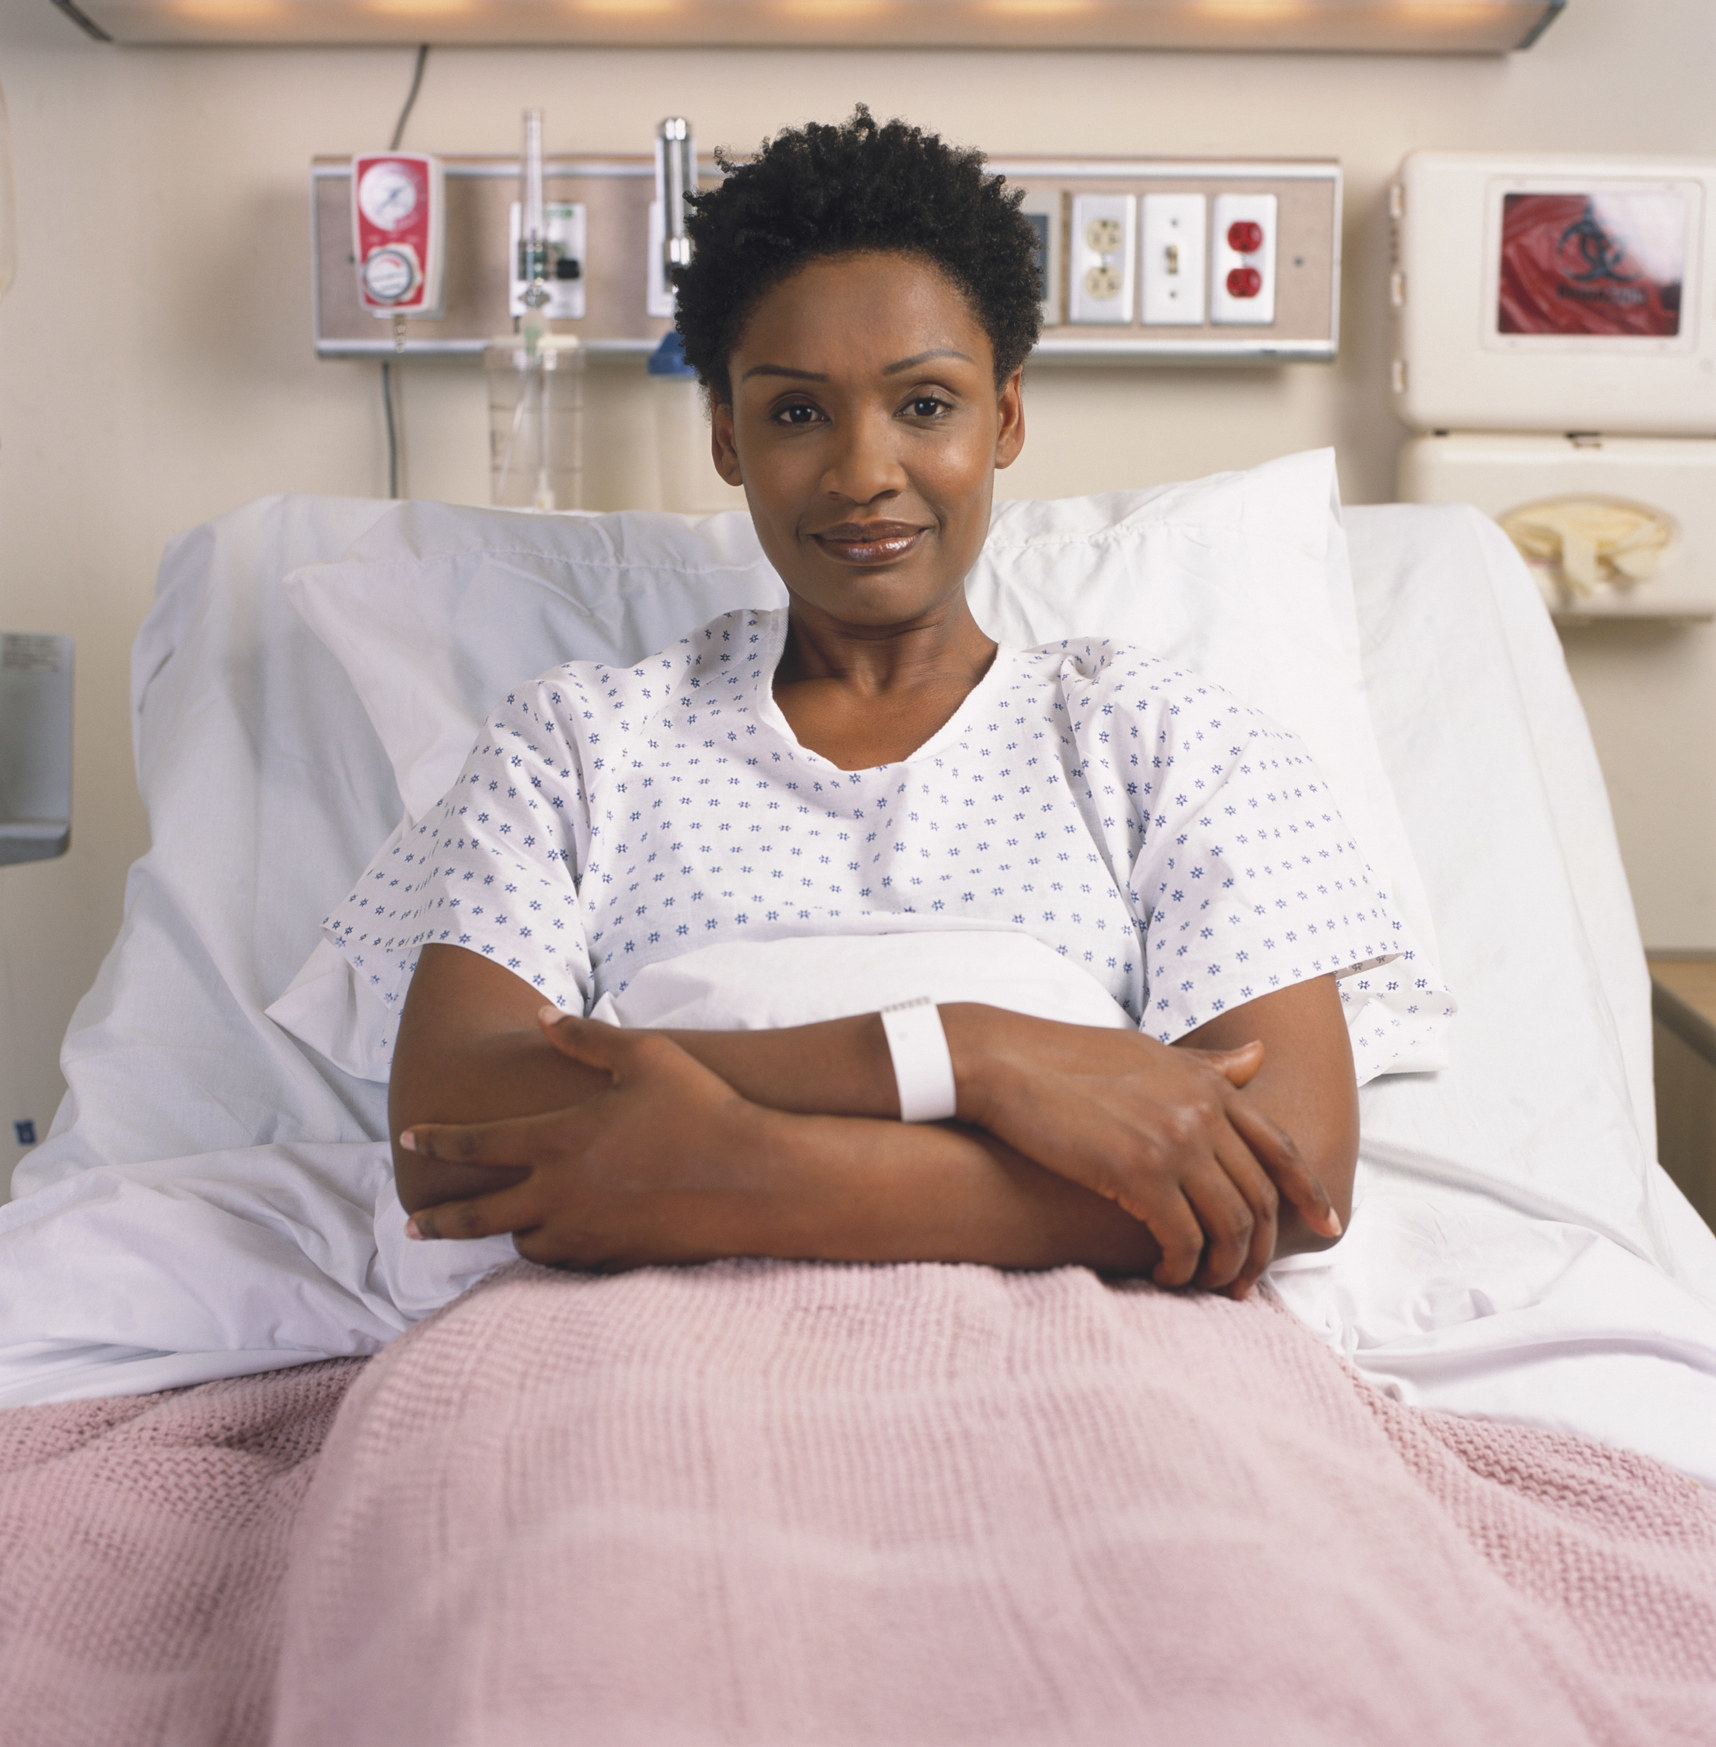 A Black woman sitting in a hospital bed